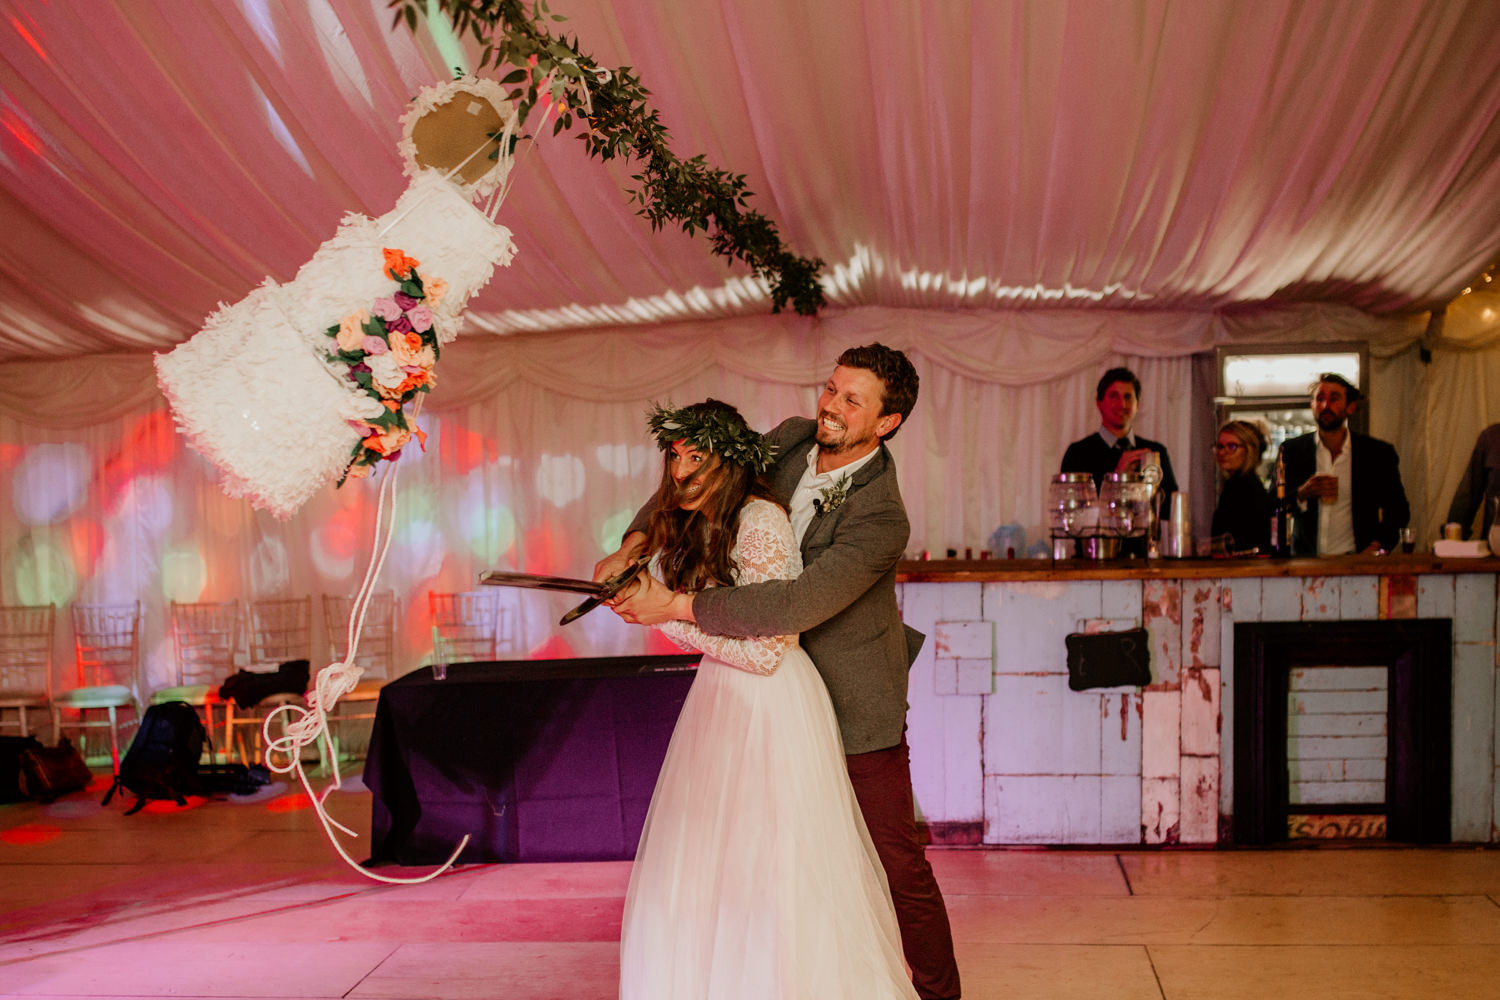 bride and groom kicking the confetti non-traditional wedding cake during their Scotland elopement at Harvest Moon